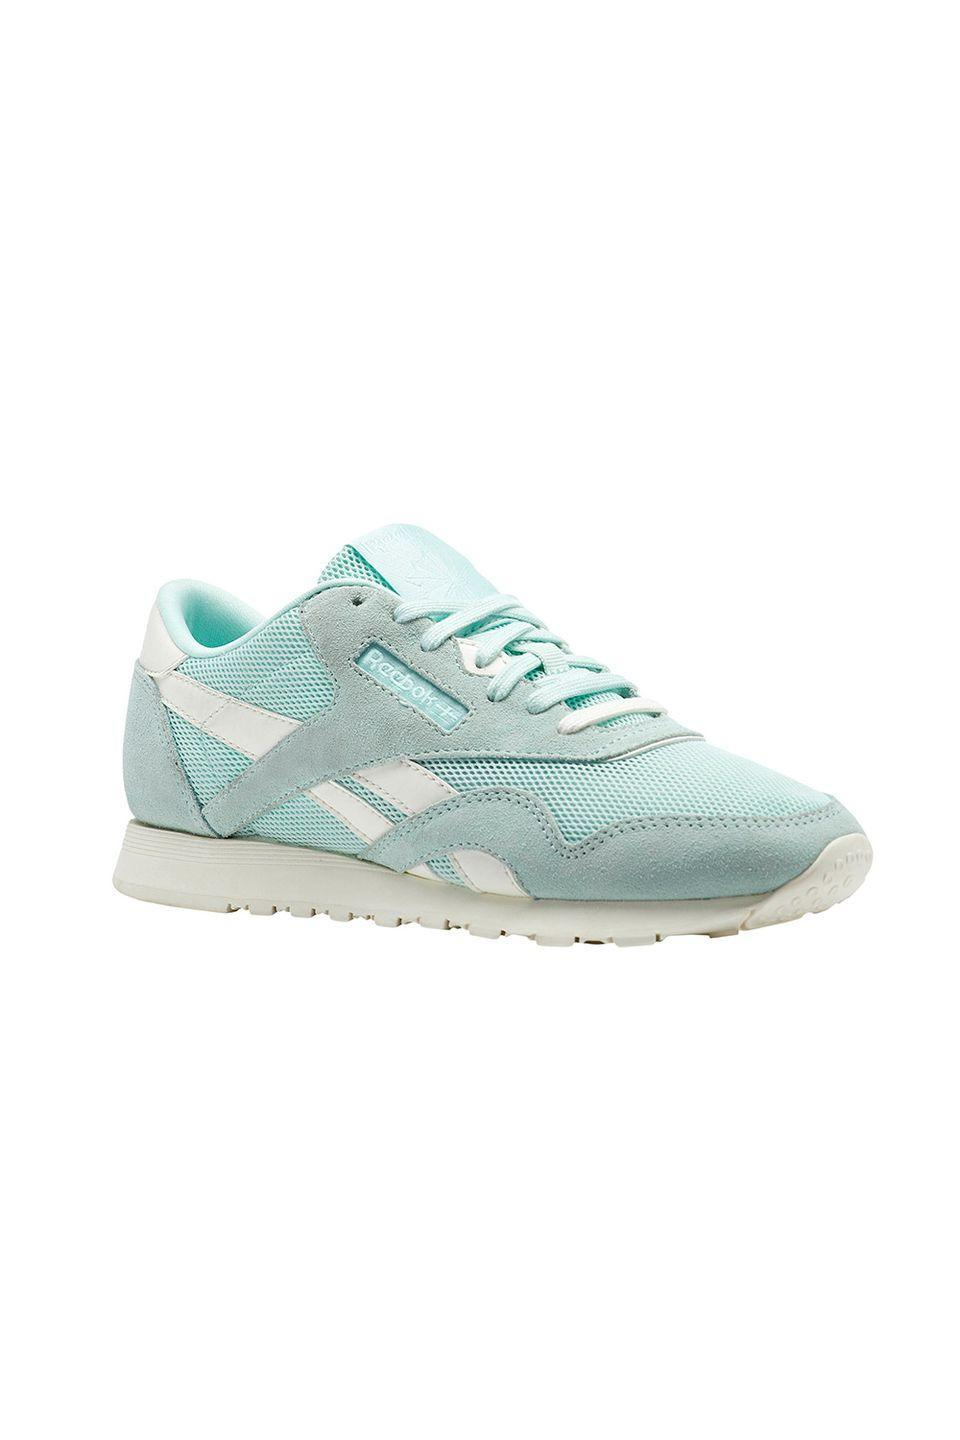 """<p>Comfy-cute and easily styled with any outfit. </p><p>Reebok sneakers, $65, <a href=""""https://www.reebok.com/us/"""" rel=""""nofollow noopener"""" target=""""_blank"""" data-ylk=""""slk:reebok.com"""" class=""""link rapid-noclick-resp"""">reebok.com</a></p>"""